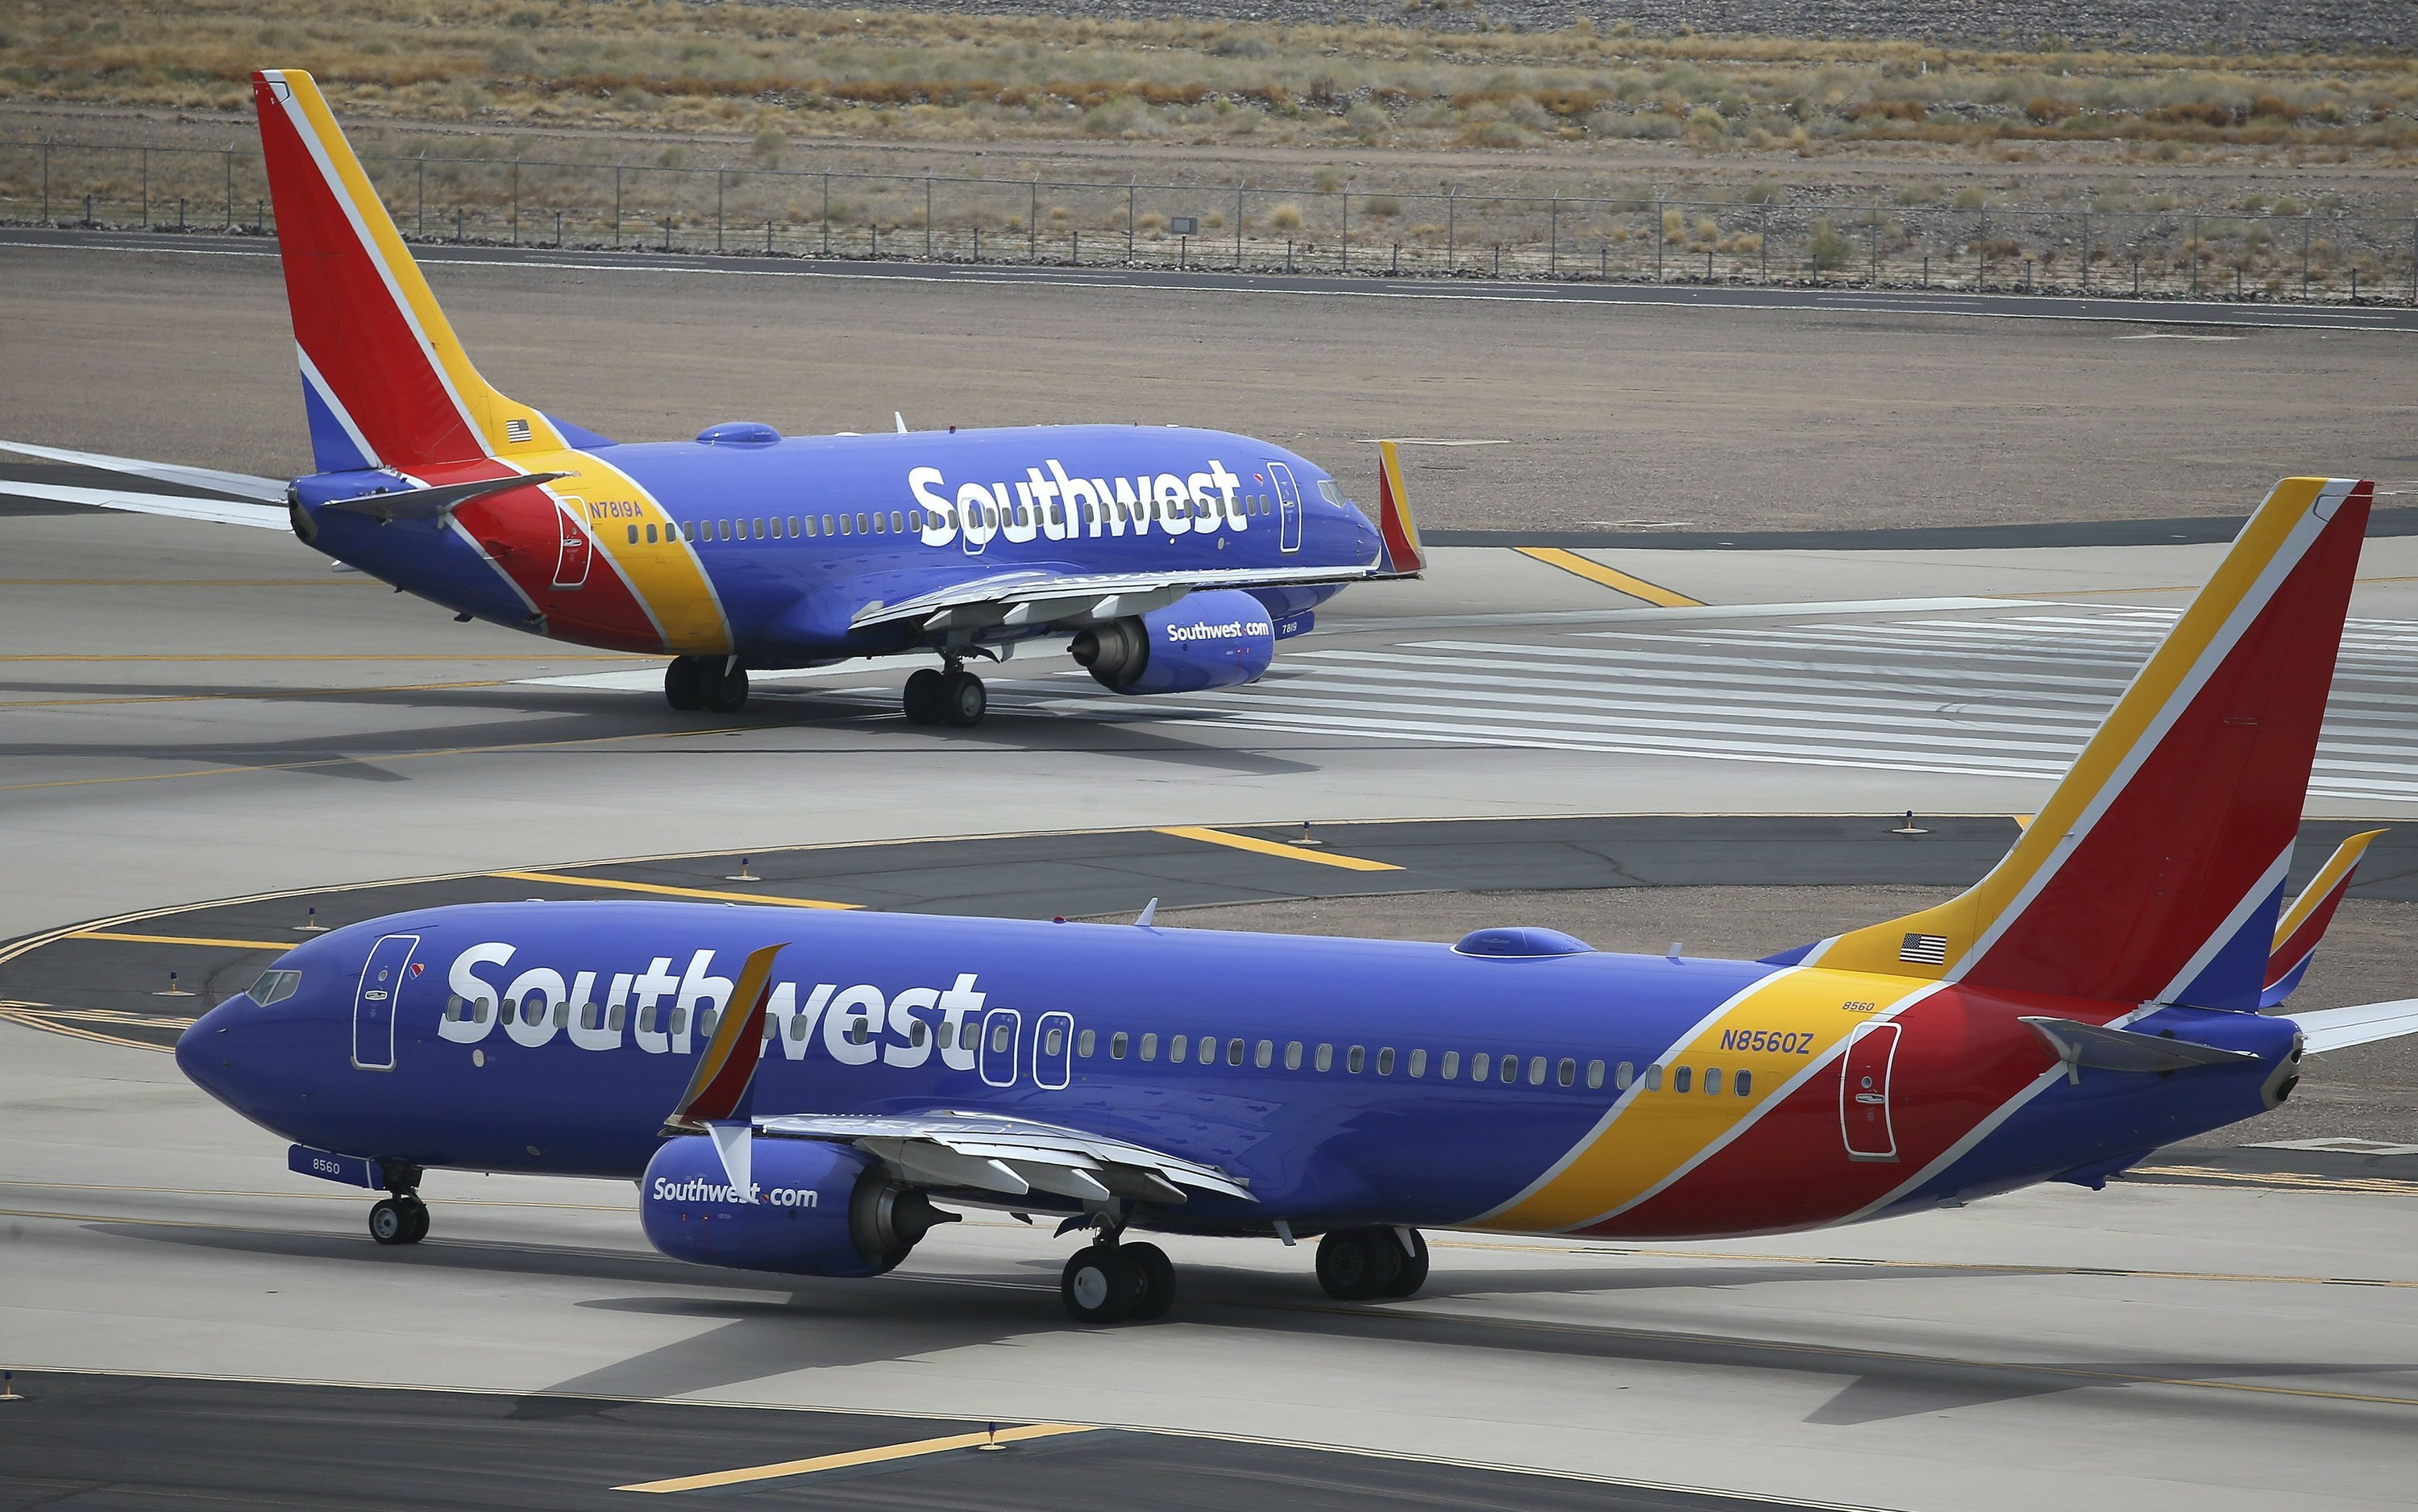 Southwest pulling out of Newark airport, groundings cited